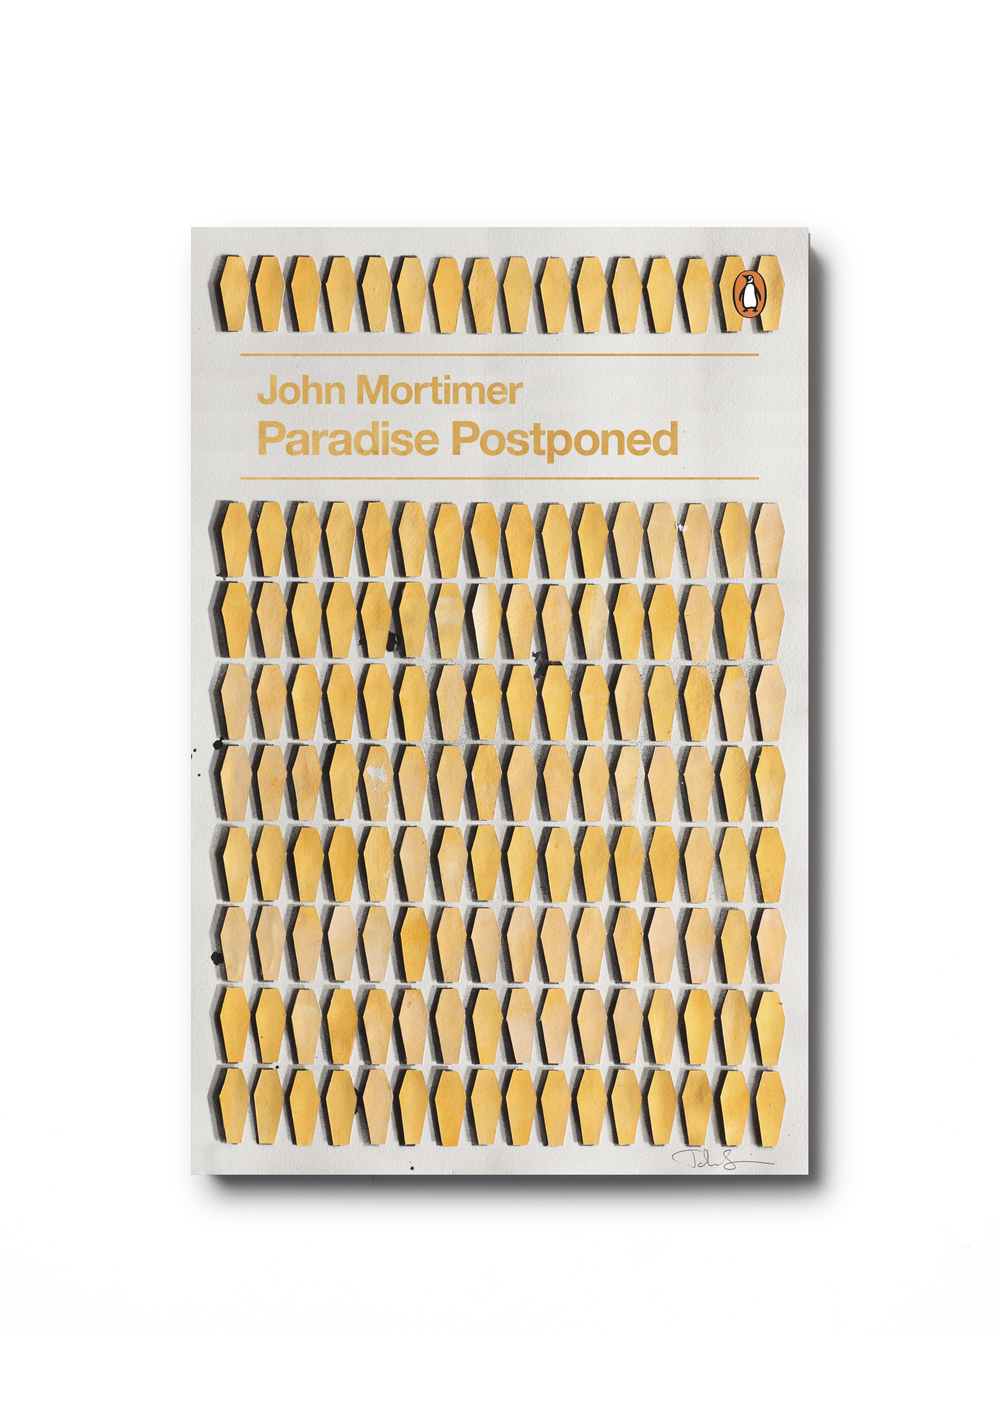 Paradise Postponed by John Mortimer  (Penguin Decades series) - Art: John Squire Design: Jim Stoddart